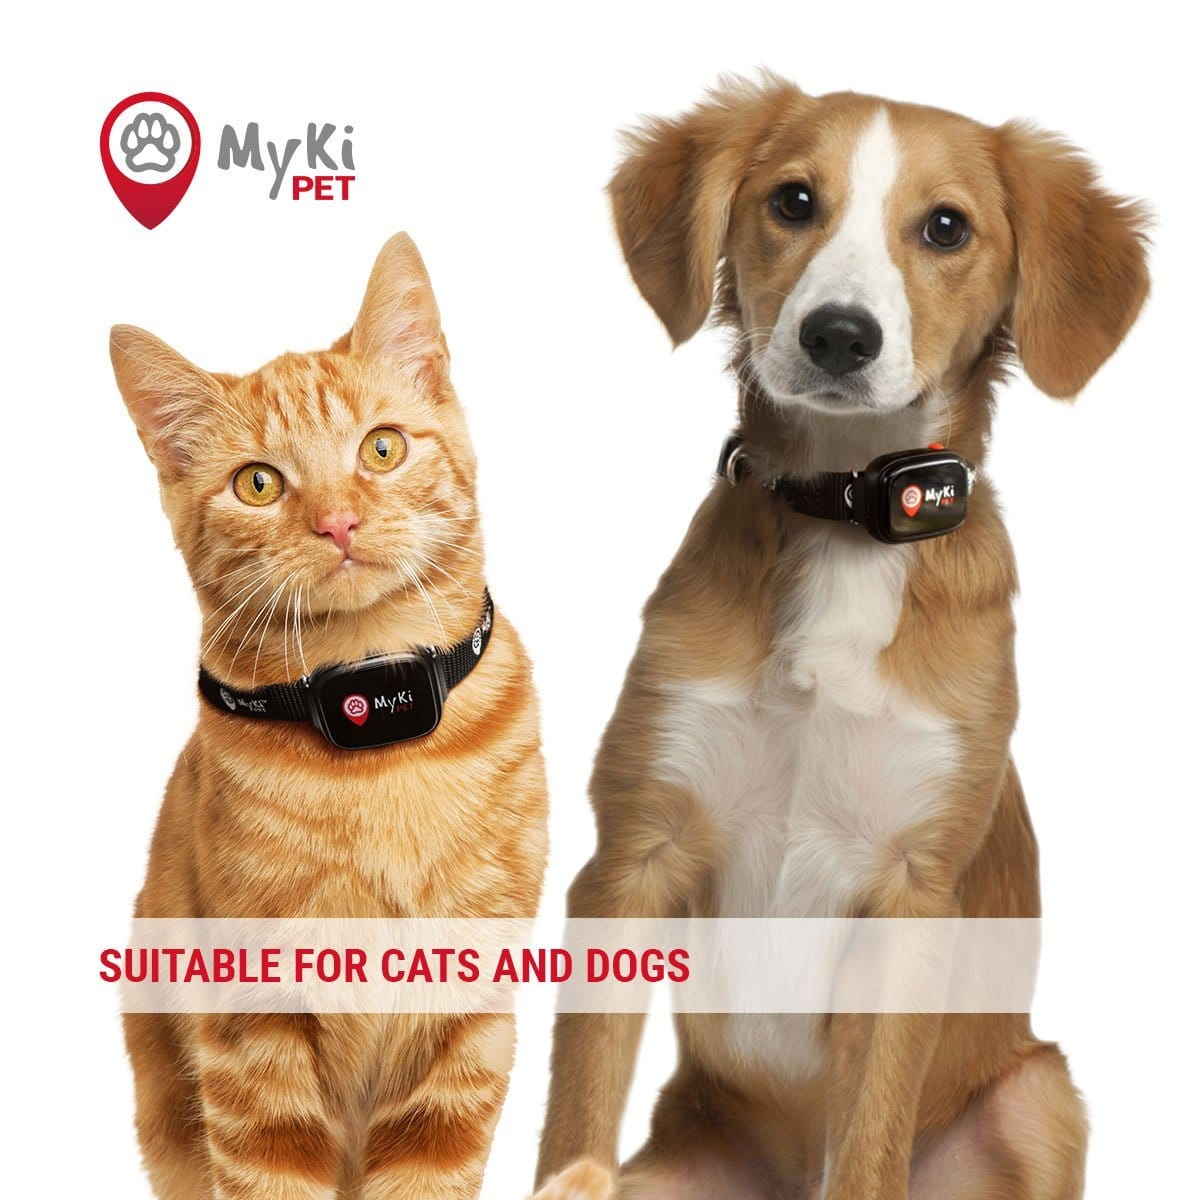 MyKi Pet Real Time GPS/GSM tracker